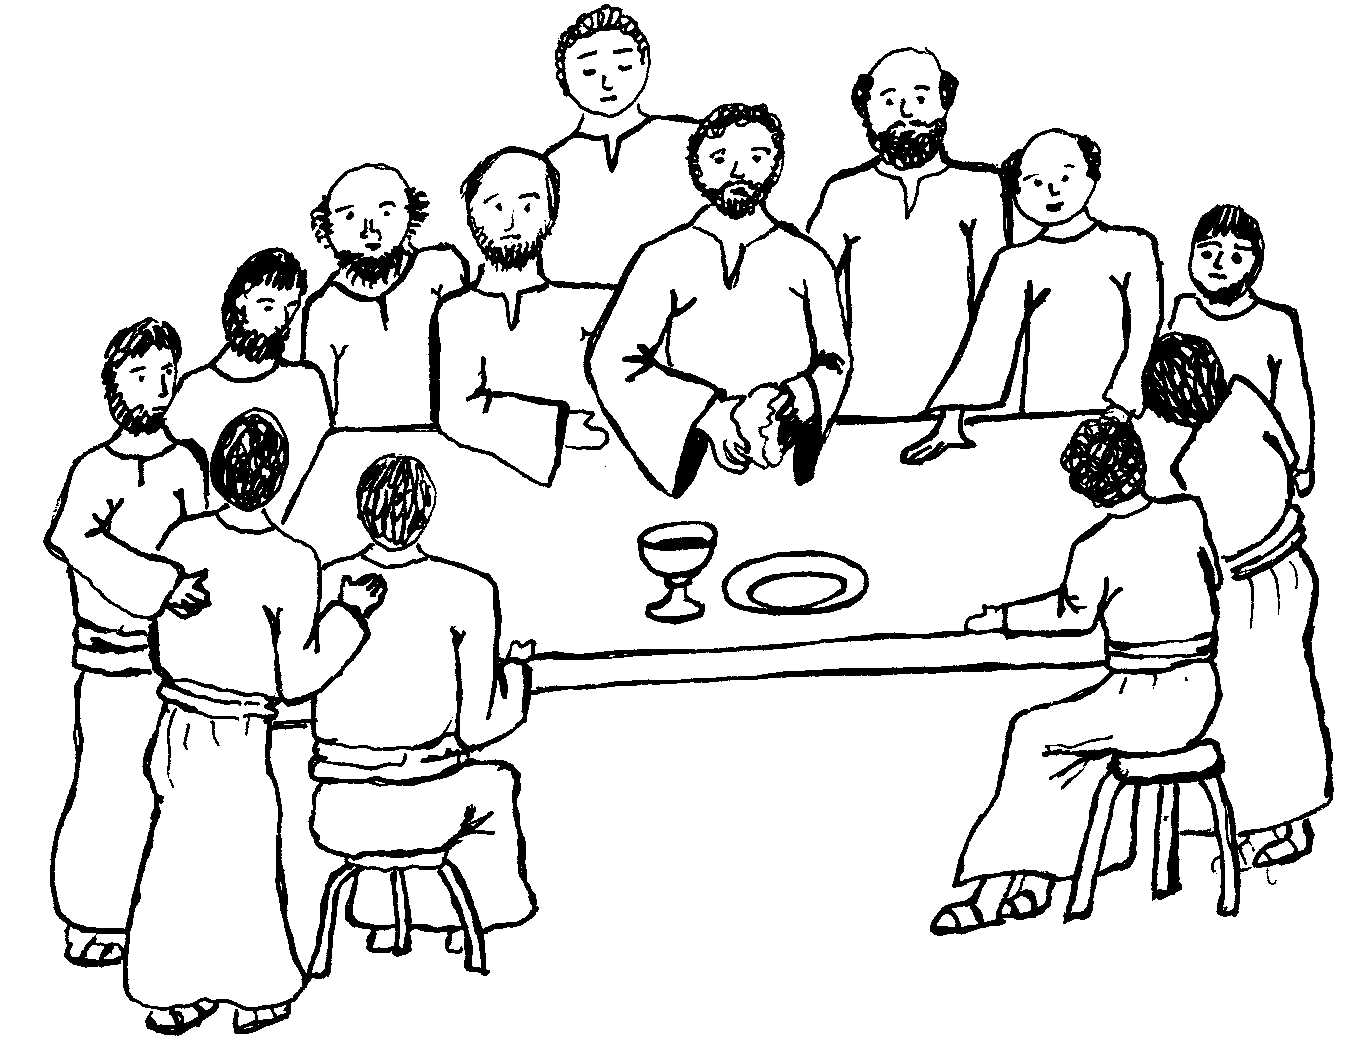 Free Lord's Supper Cliparts, Download Free Clip Art, Free Clip Art.